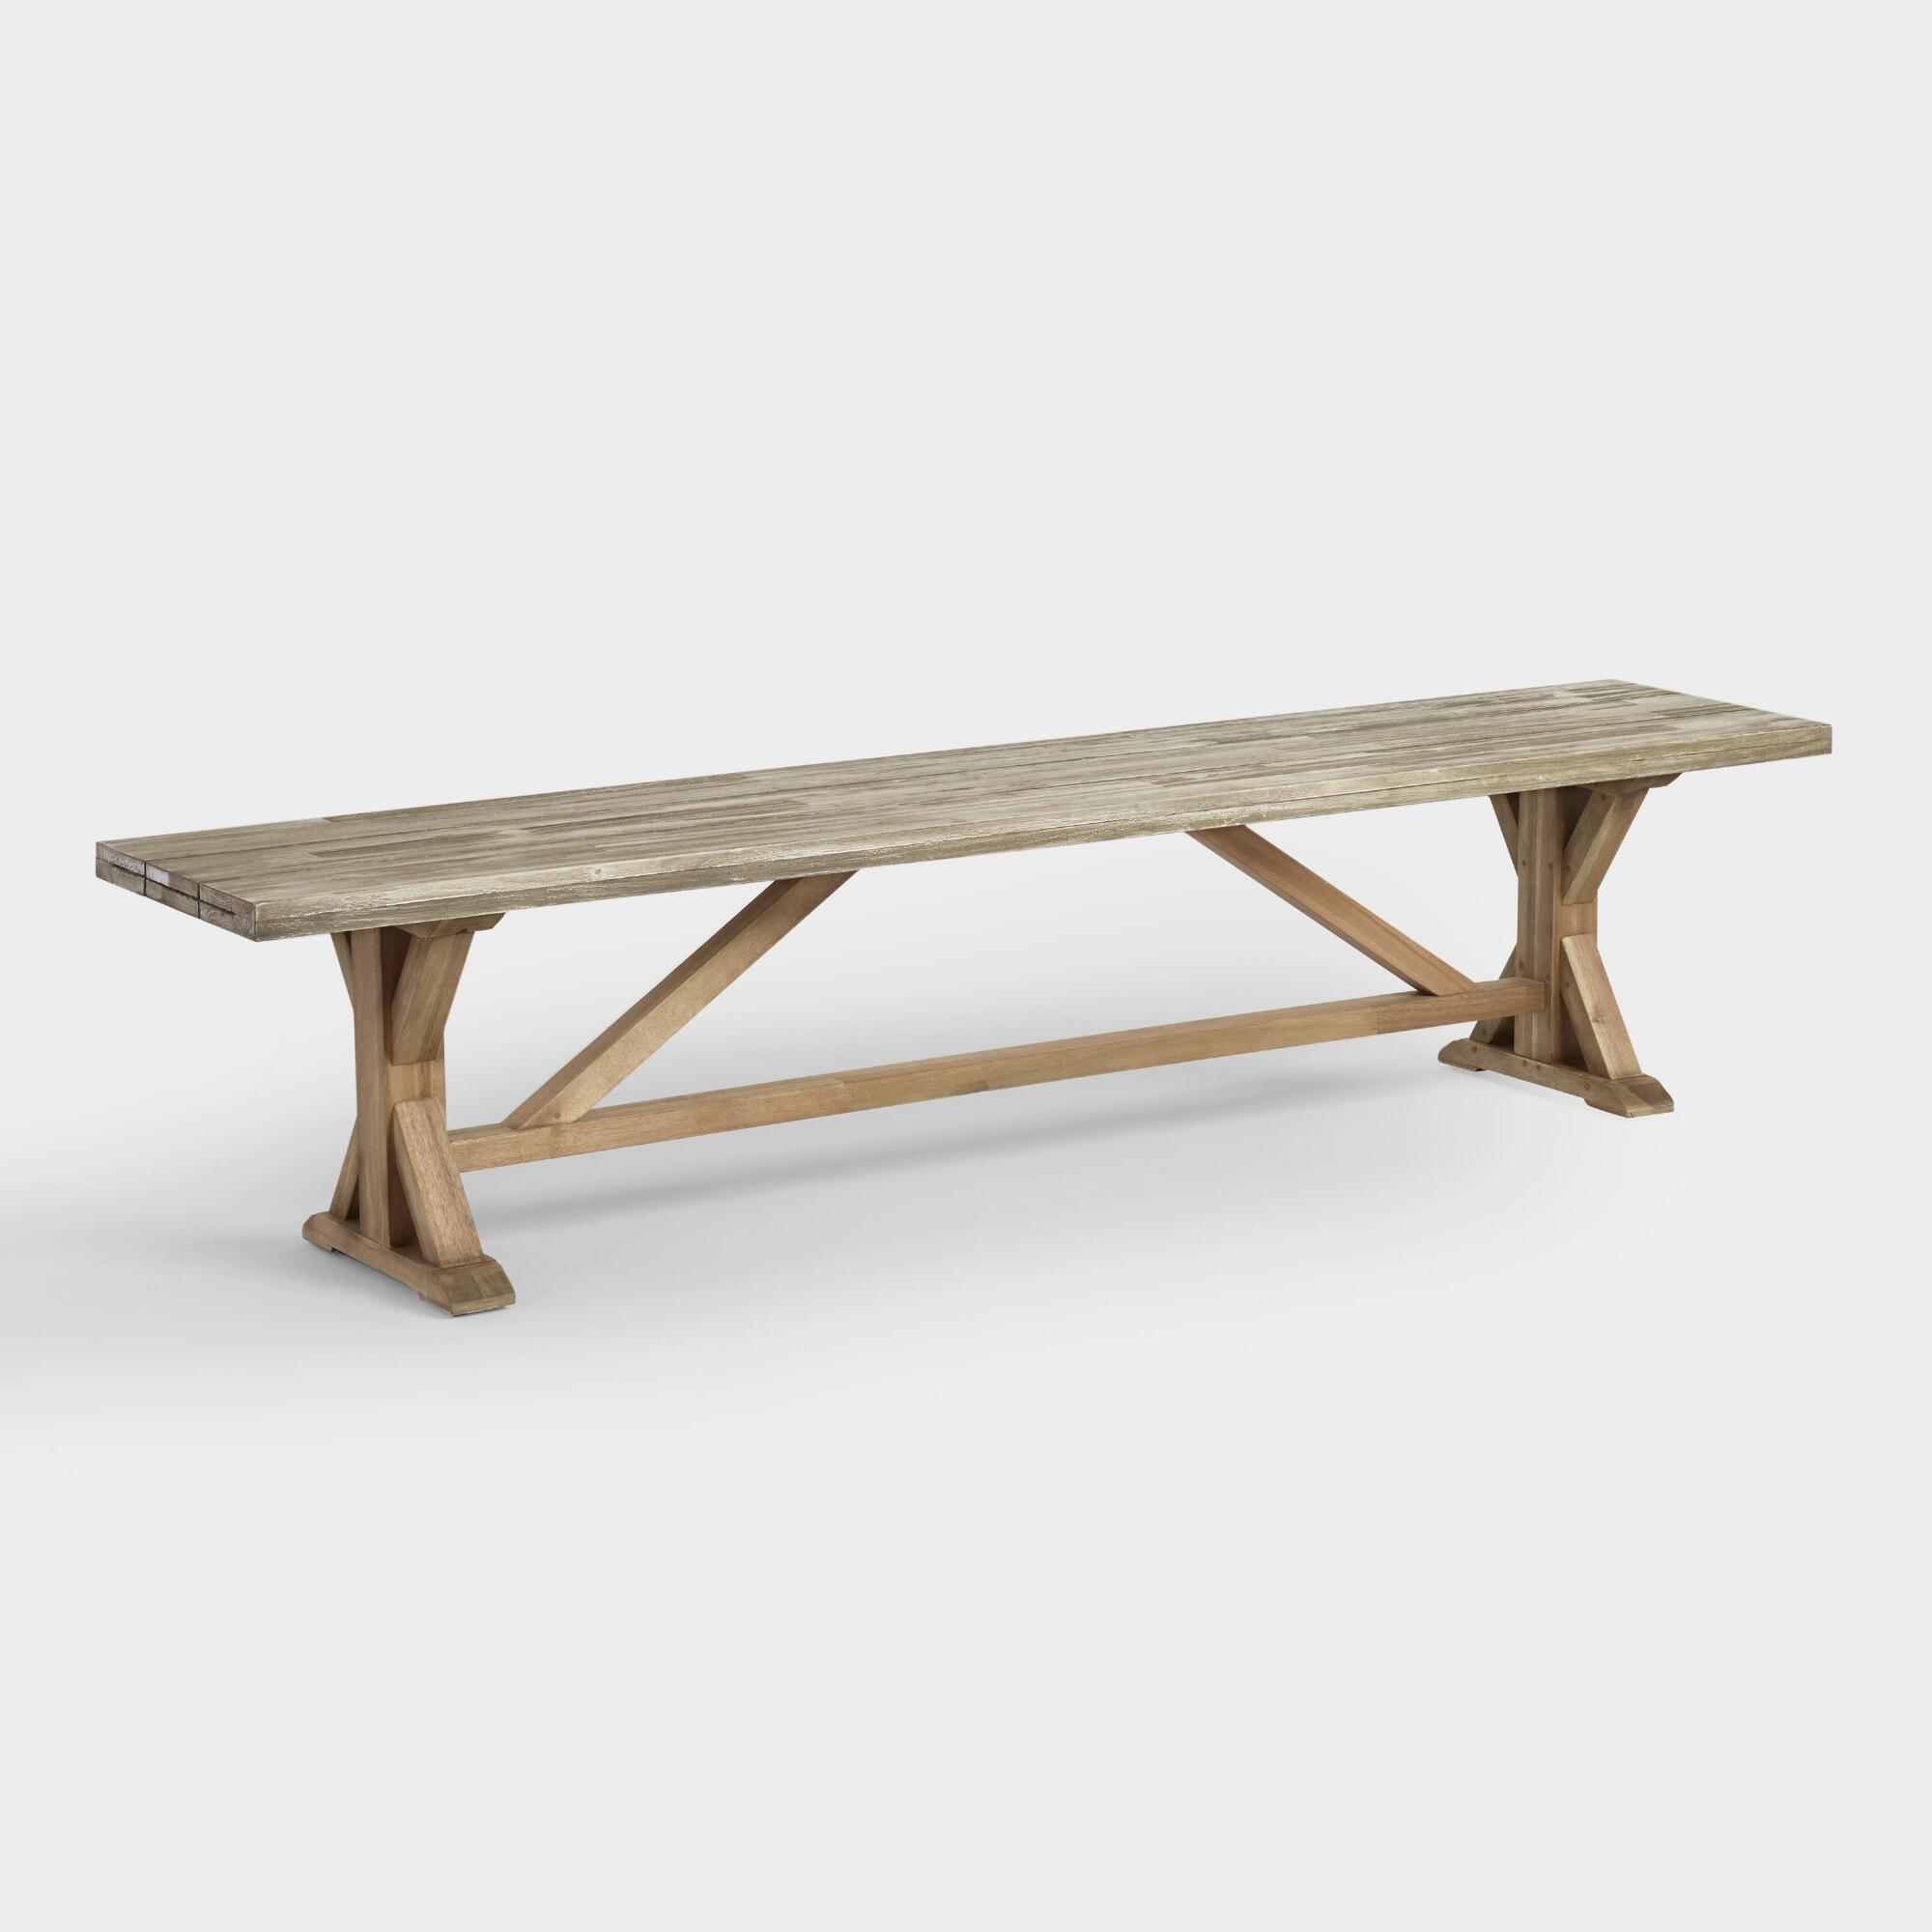 Two Tone Wood San Remo Outdoor Patio Dining Bench: Gray by World Market Cost Plus World Market